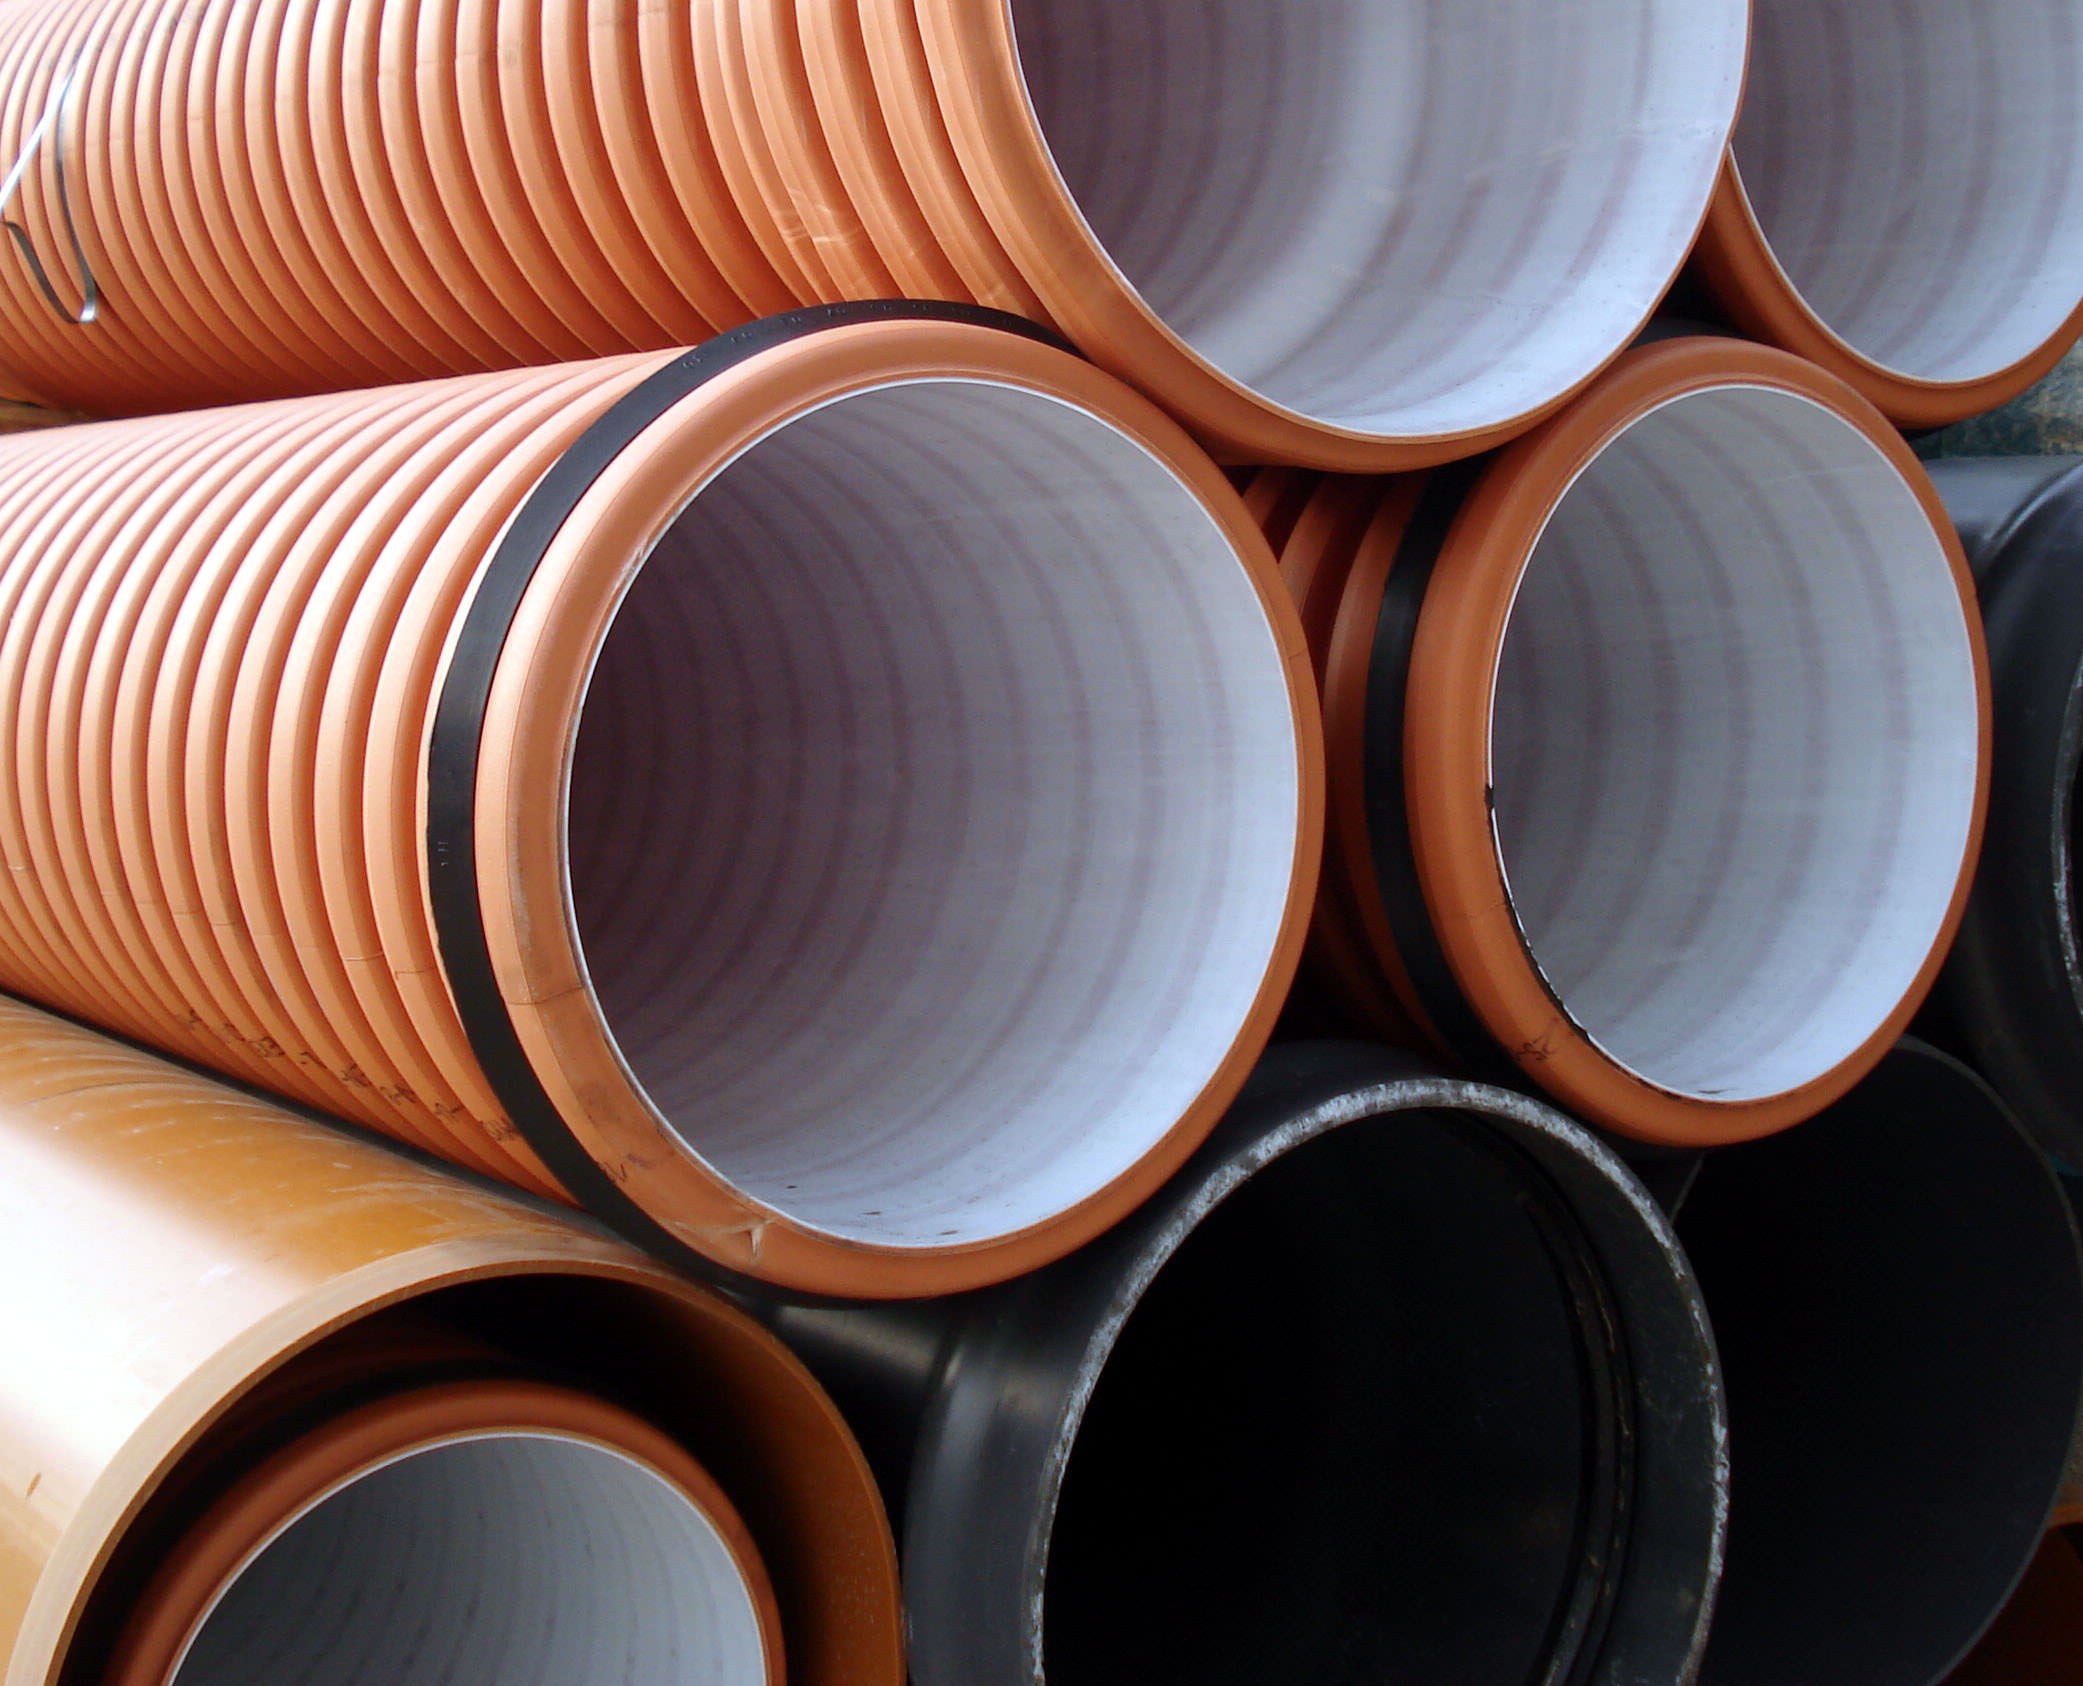 Failures in pipes